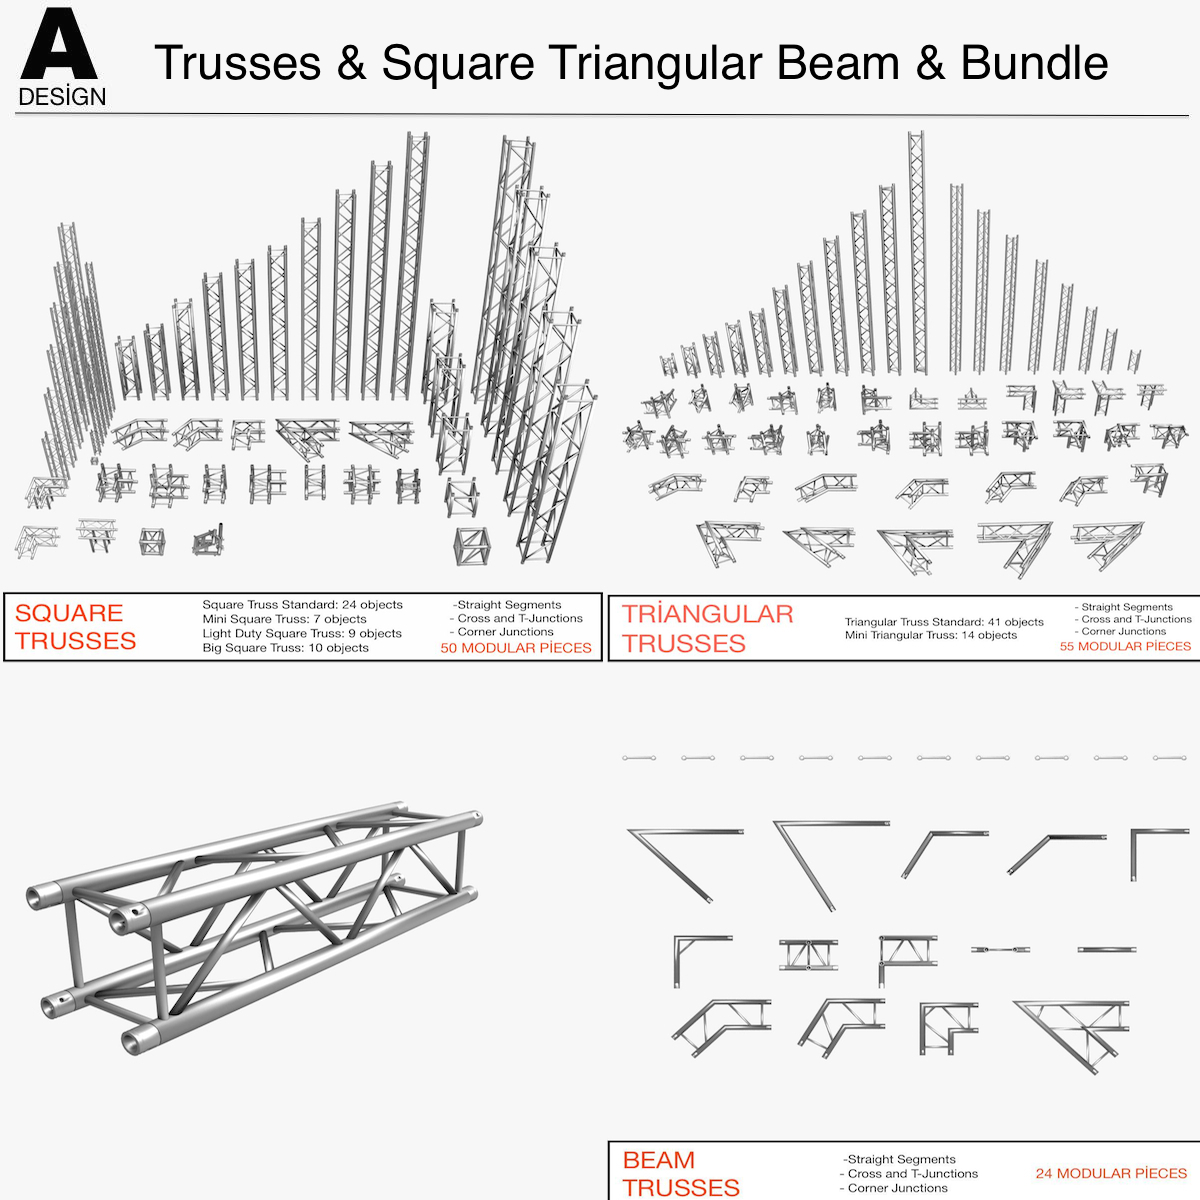 30-00-TrussesSquareTriangularBeamBundle-